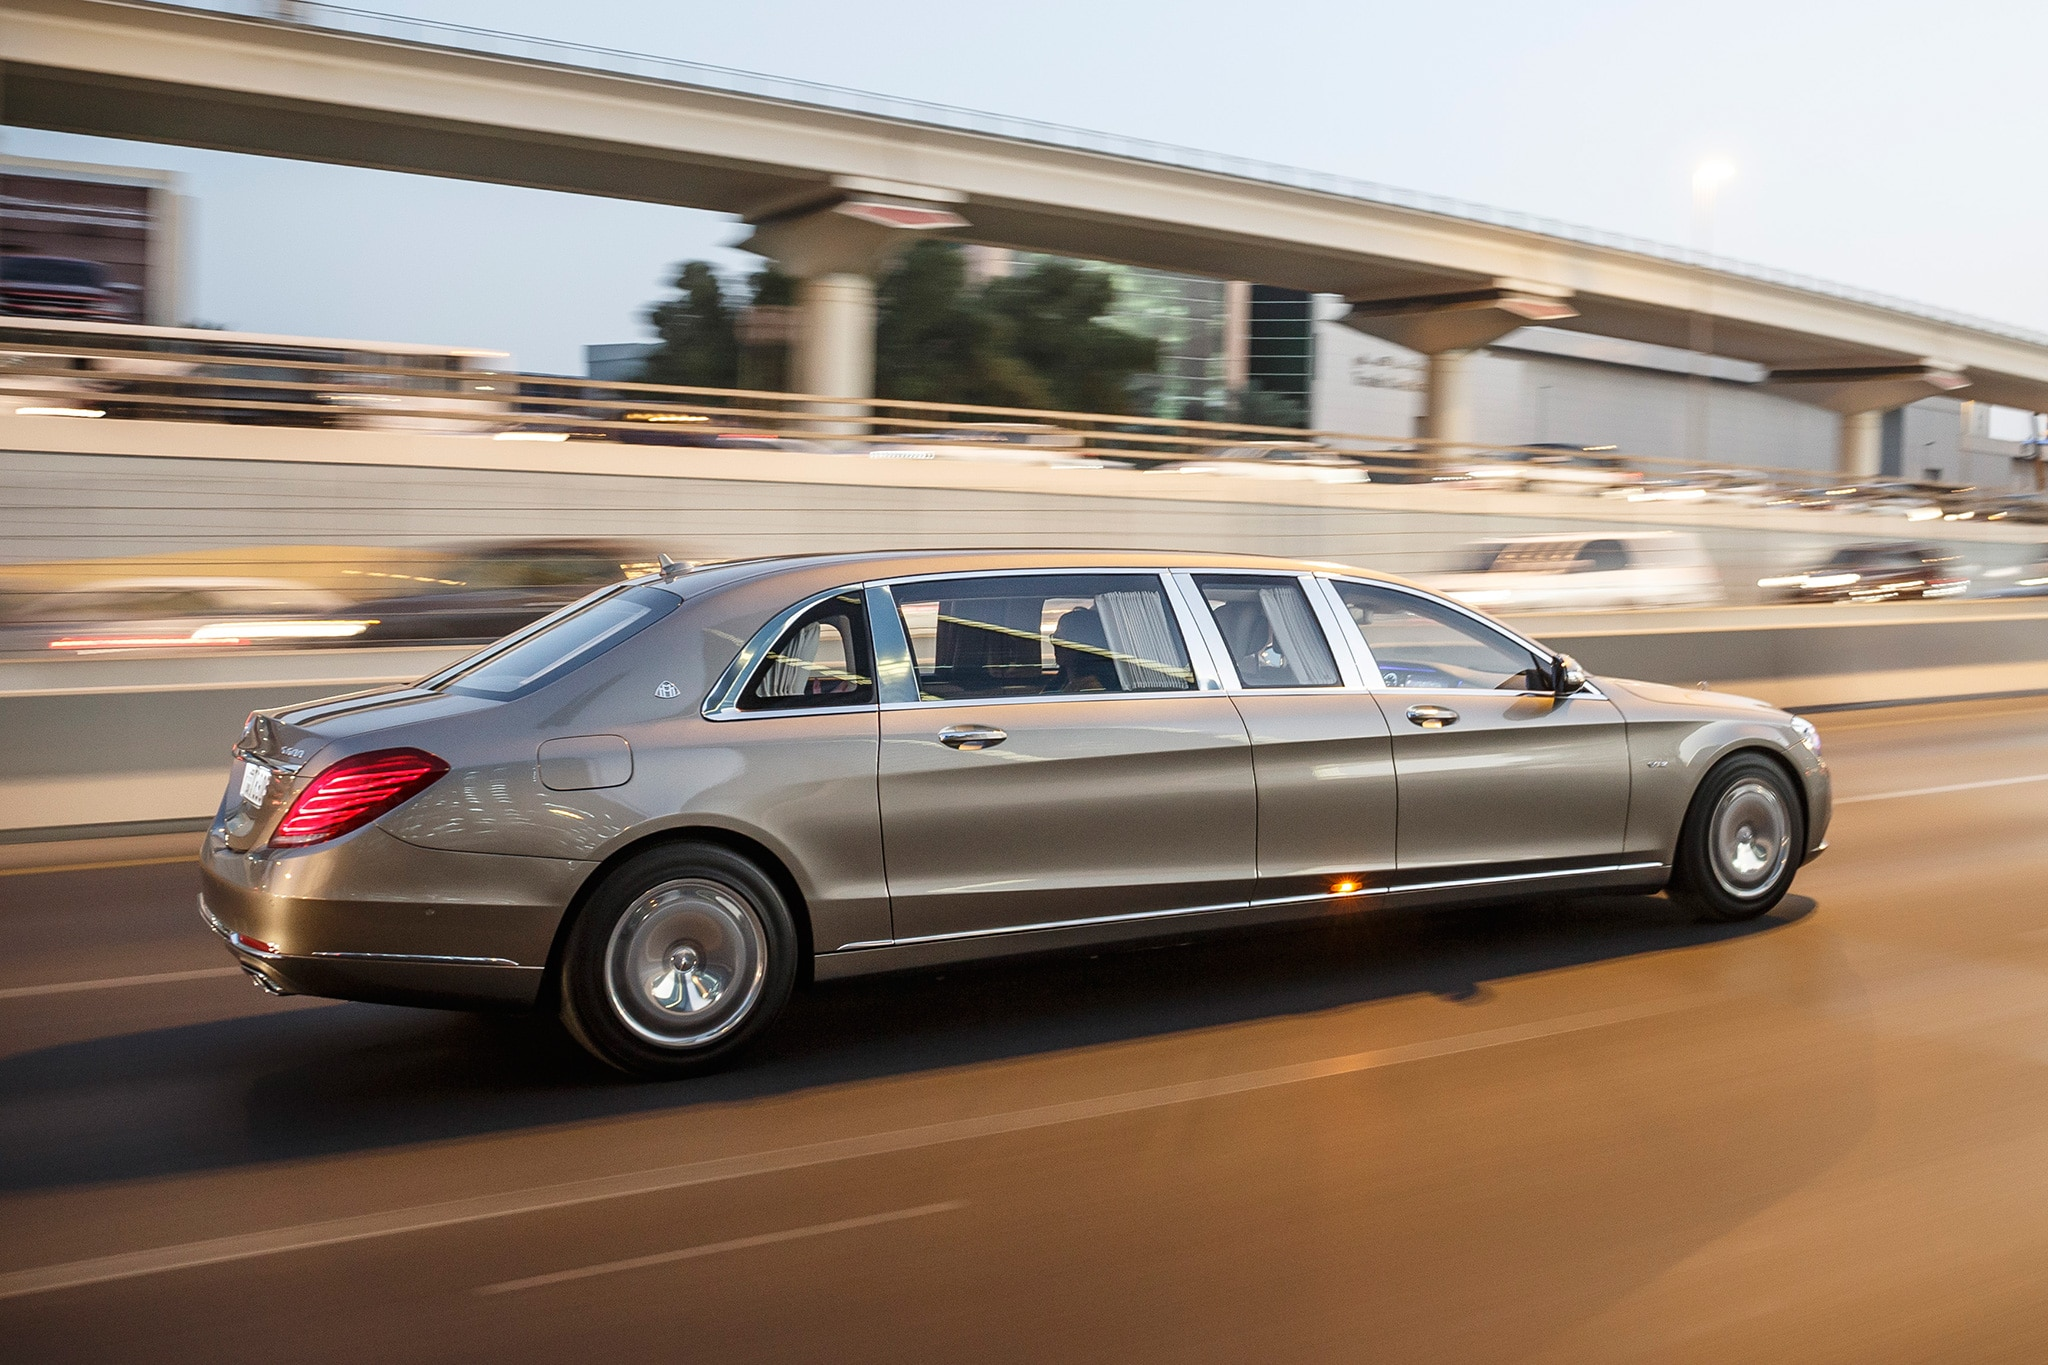 https://st.automobilemag.com/uploads/sites/11/2016/08/2016-Mercedes-Maybach-S600-Pullman-side-profile-in-motion-02.jpg